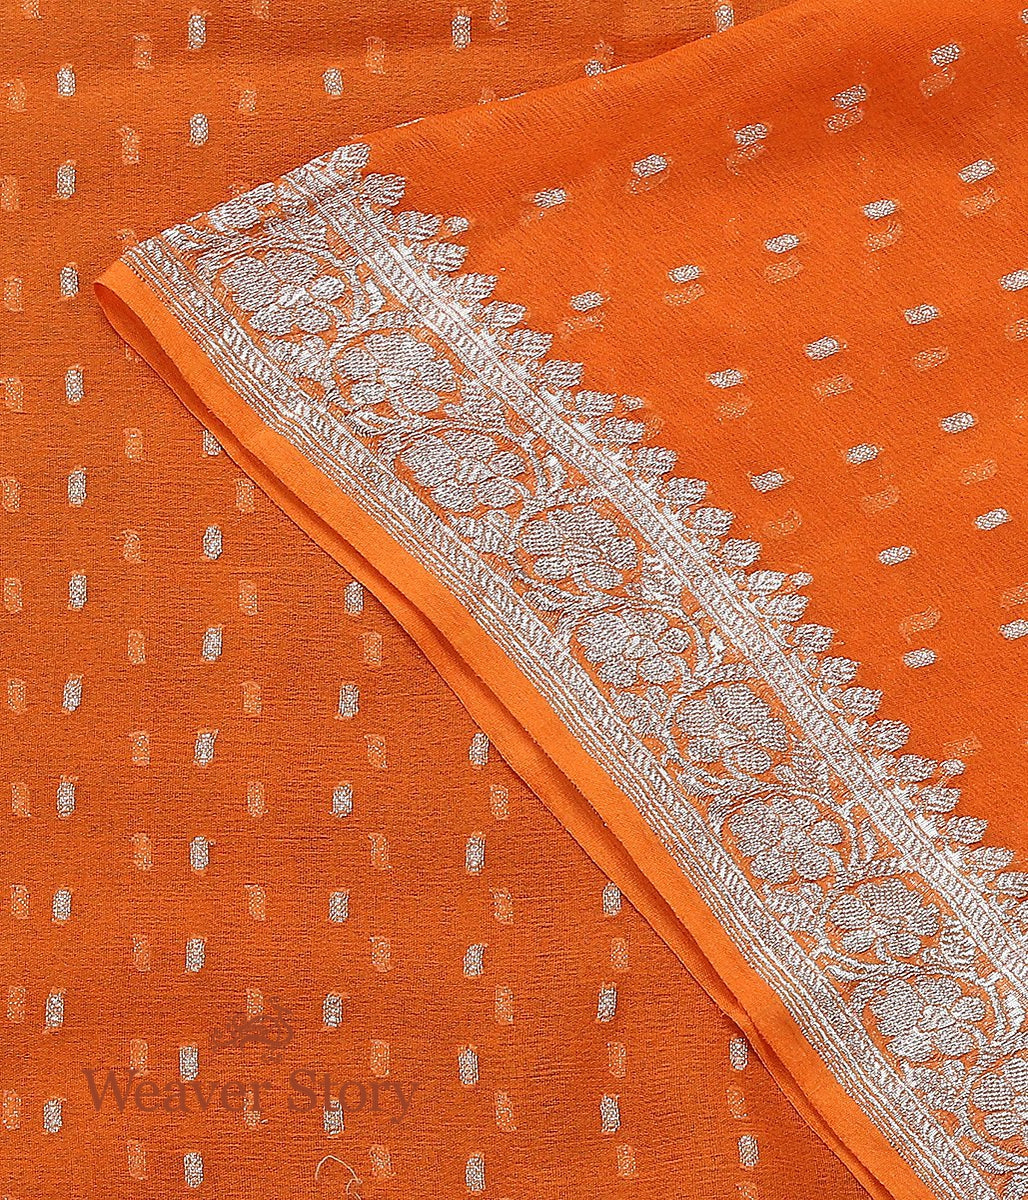 Handwoven Orange Georgette Dupatta with Silver Zari